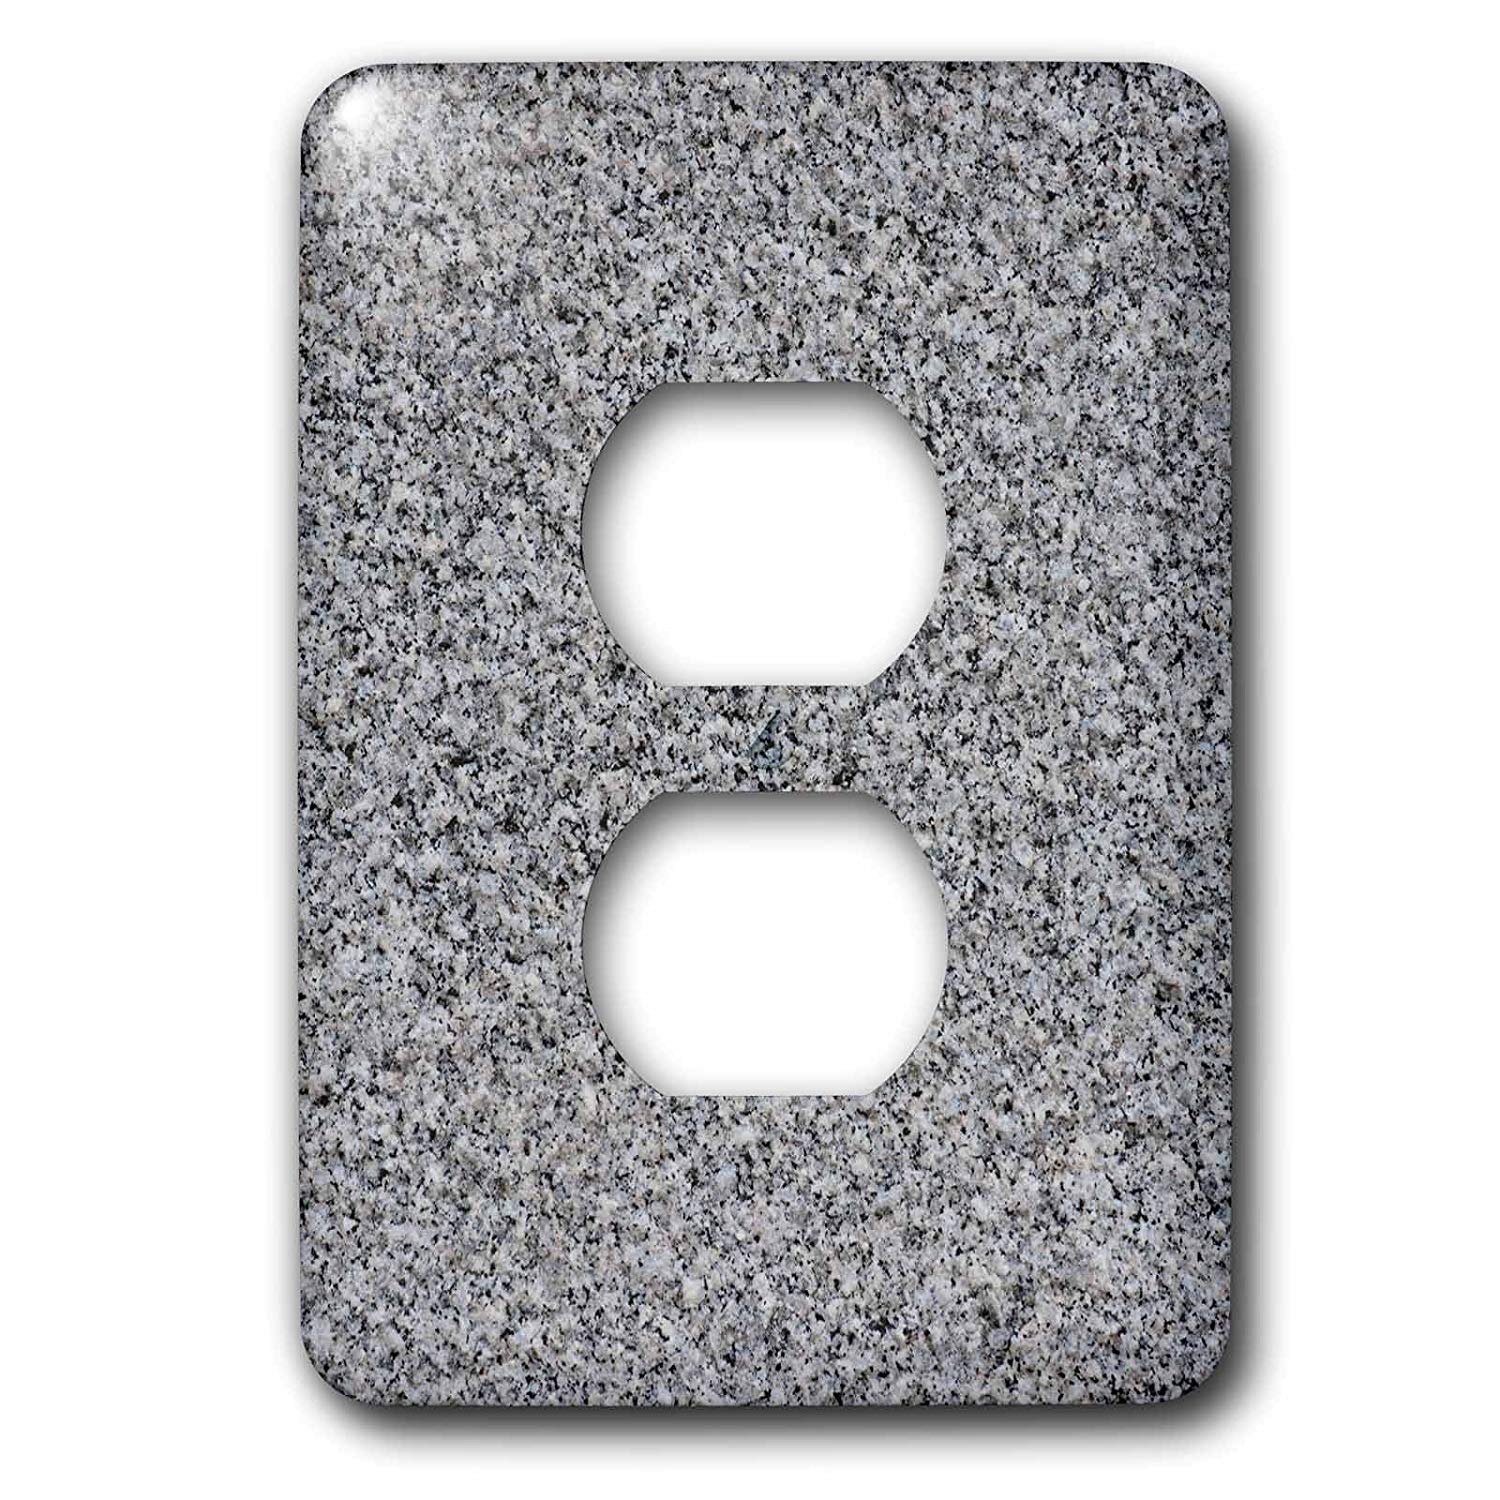 3dRose Alexis Photography - Texture Stone - Image of polished granite plate of dark grey, light beige colors - Light Switch Covers - 2 plug outlet cover (lsp_285837_6)